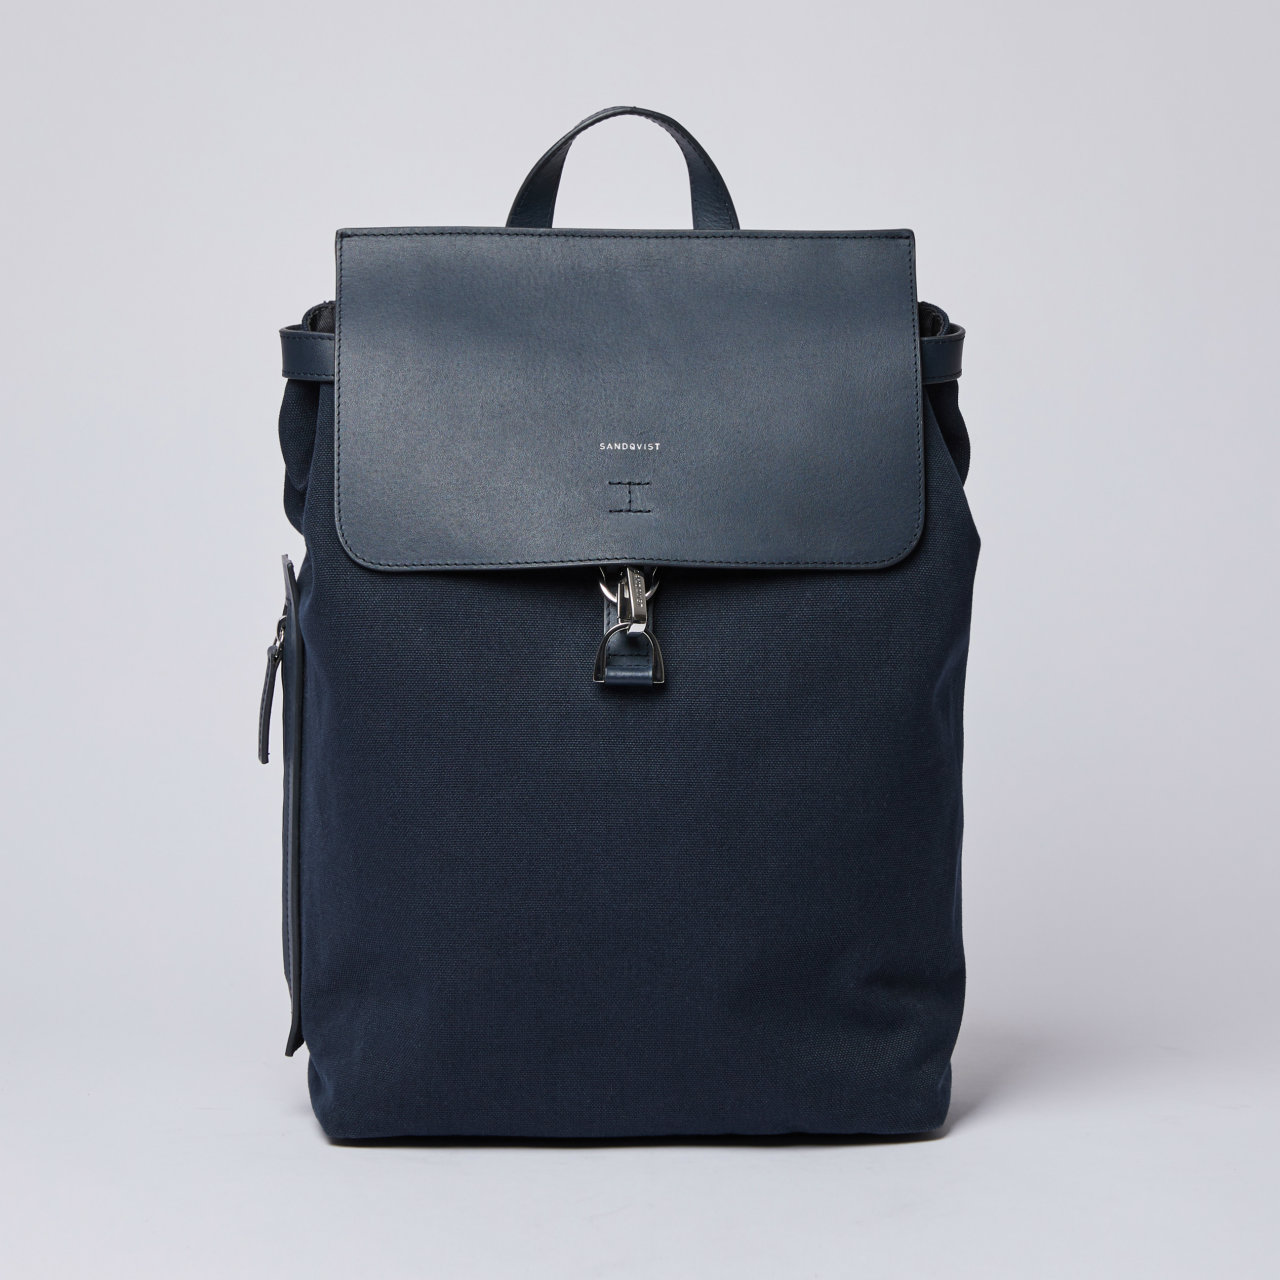 サムネイル:SANDQVIST ALVA W/DOG HOOK ネイビー(Navy with Navy Leather)